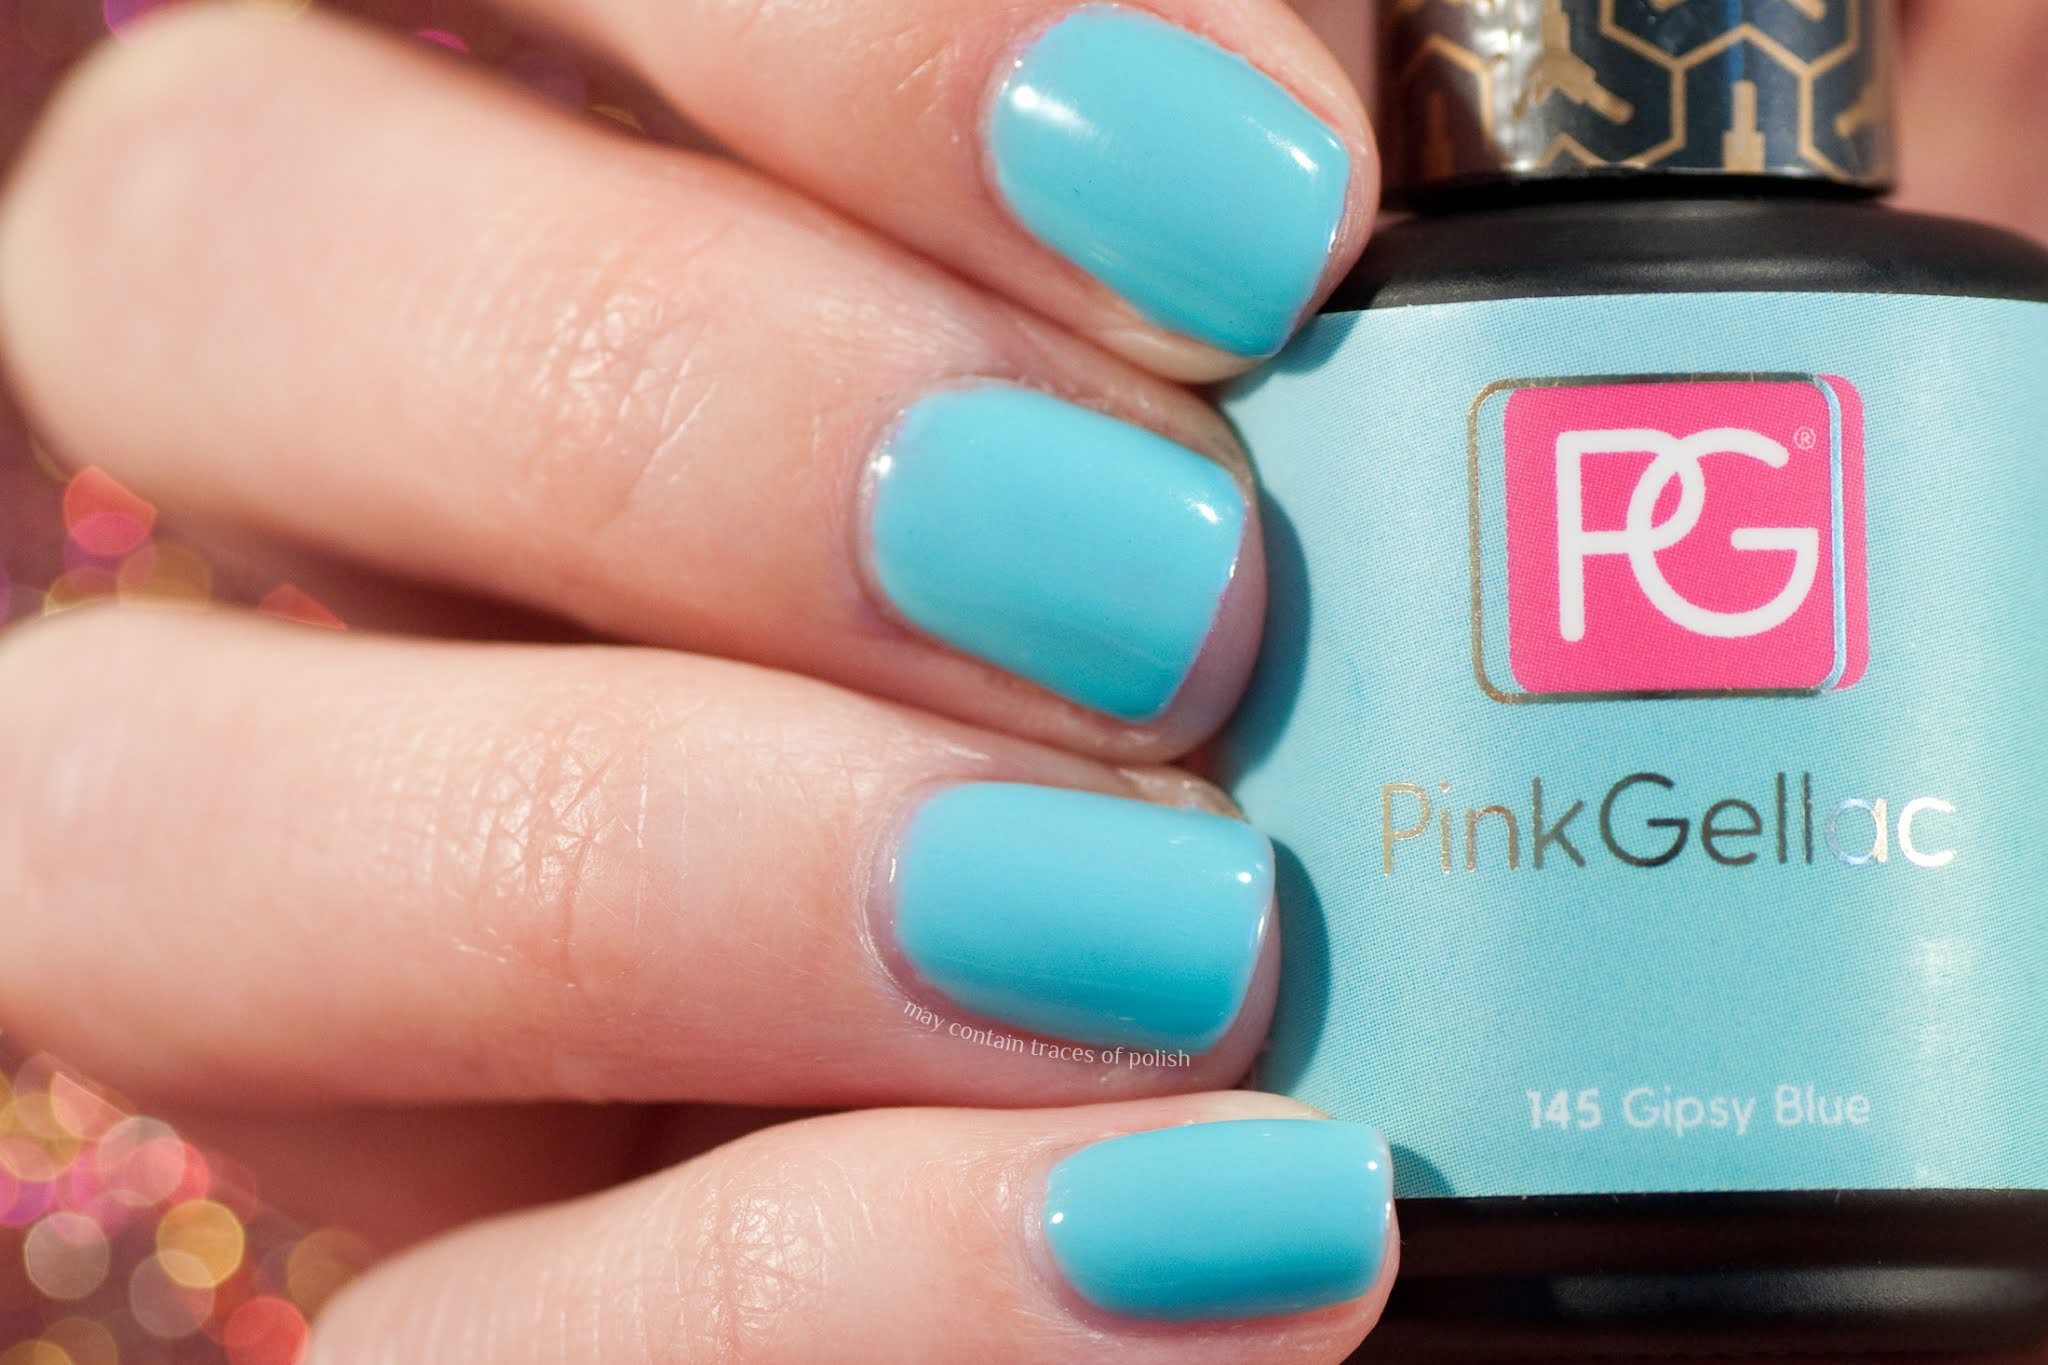 Pink Gellac swatches - 145 Gipsy Blue